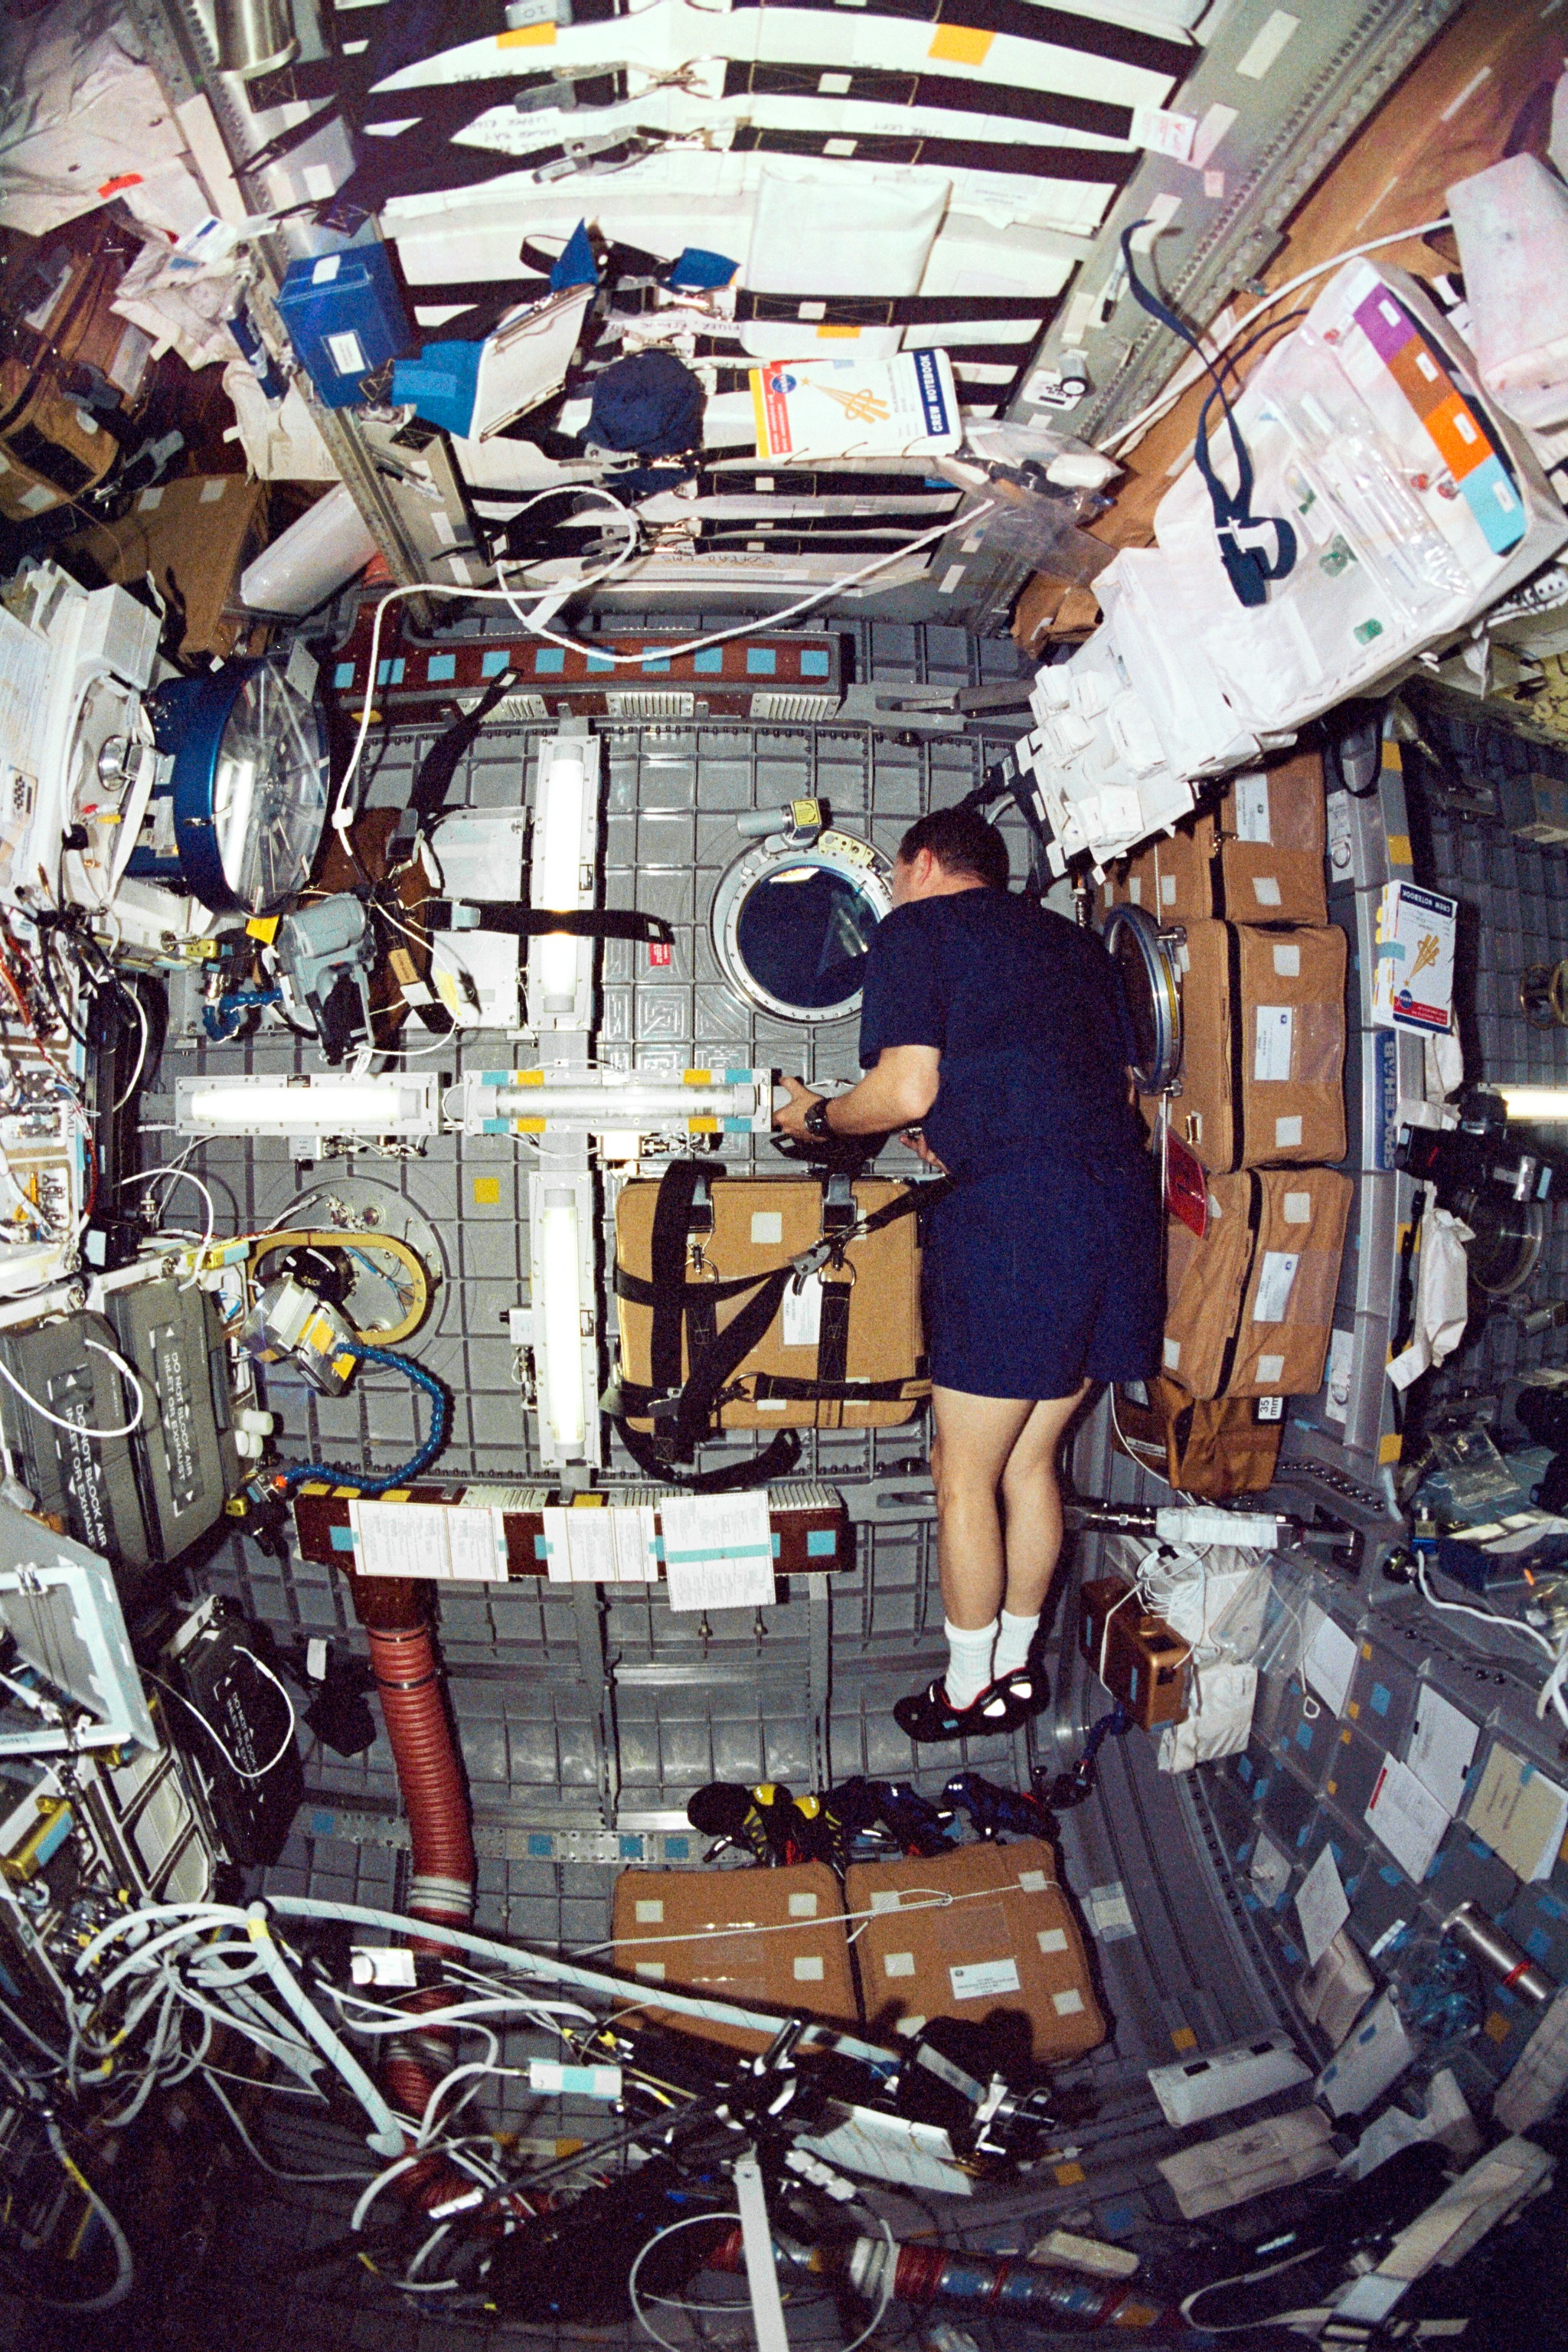 Astronaut David M. Brown, STS-107 Mission Specialist